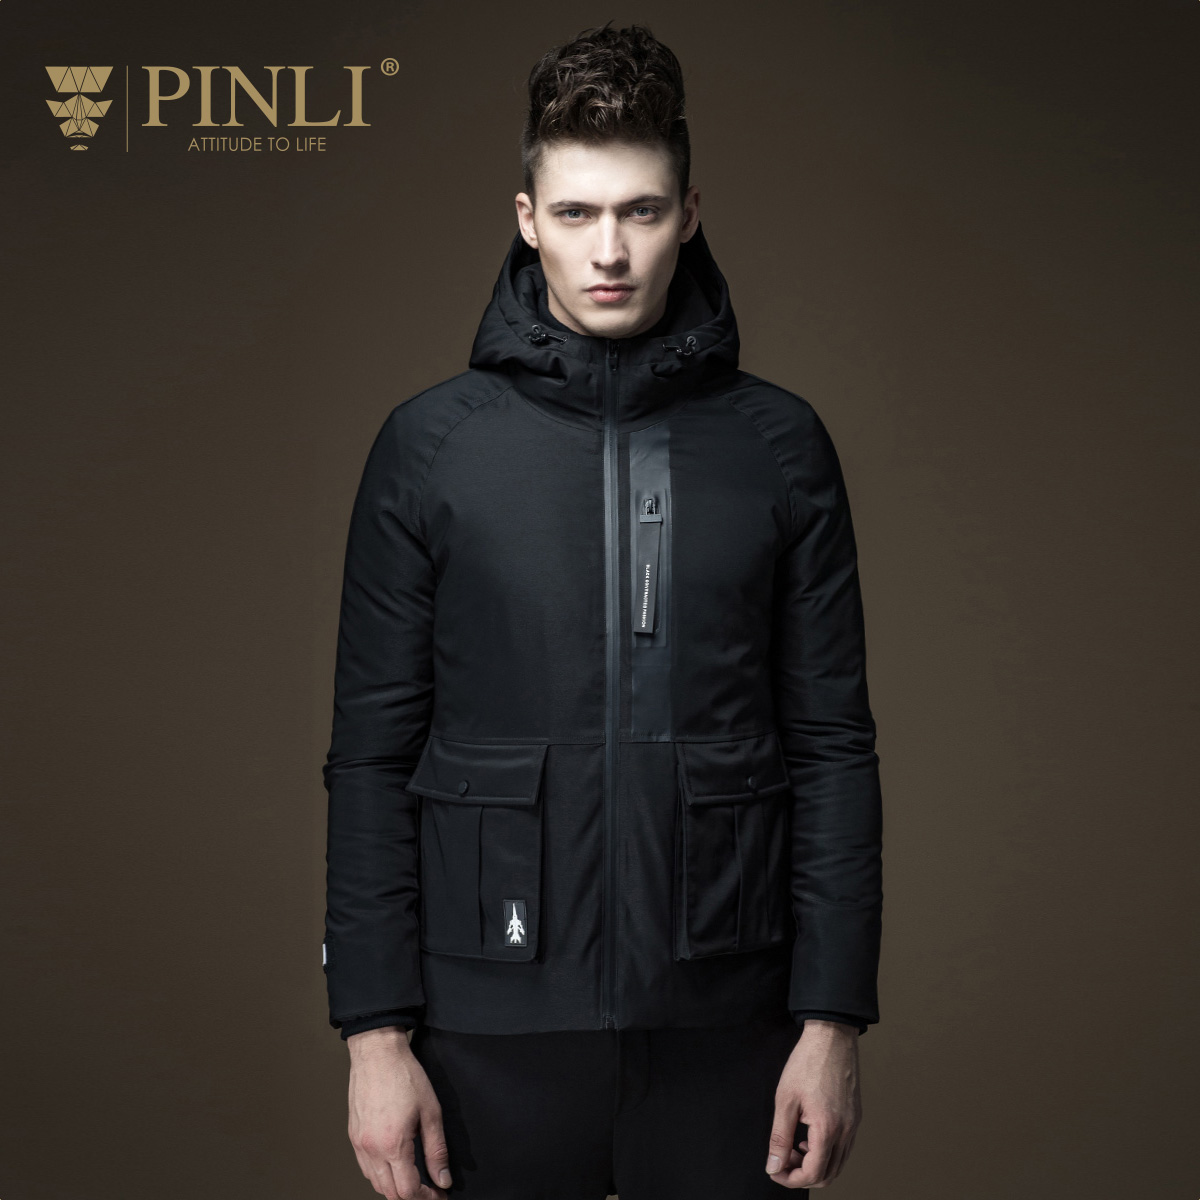 2017 Winter Jackets Mens Winter Jacket Men New Arrival Polyester Regular Stand Wadding Fashion Pinli Fall Male Warm D163608326